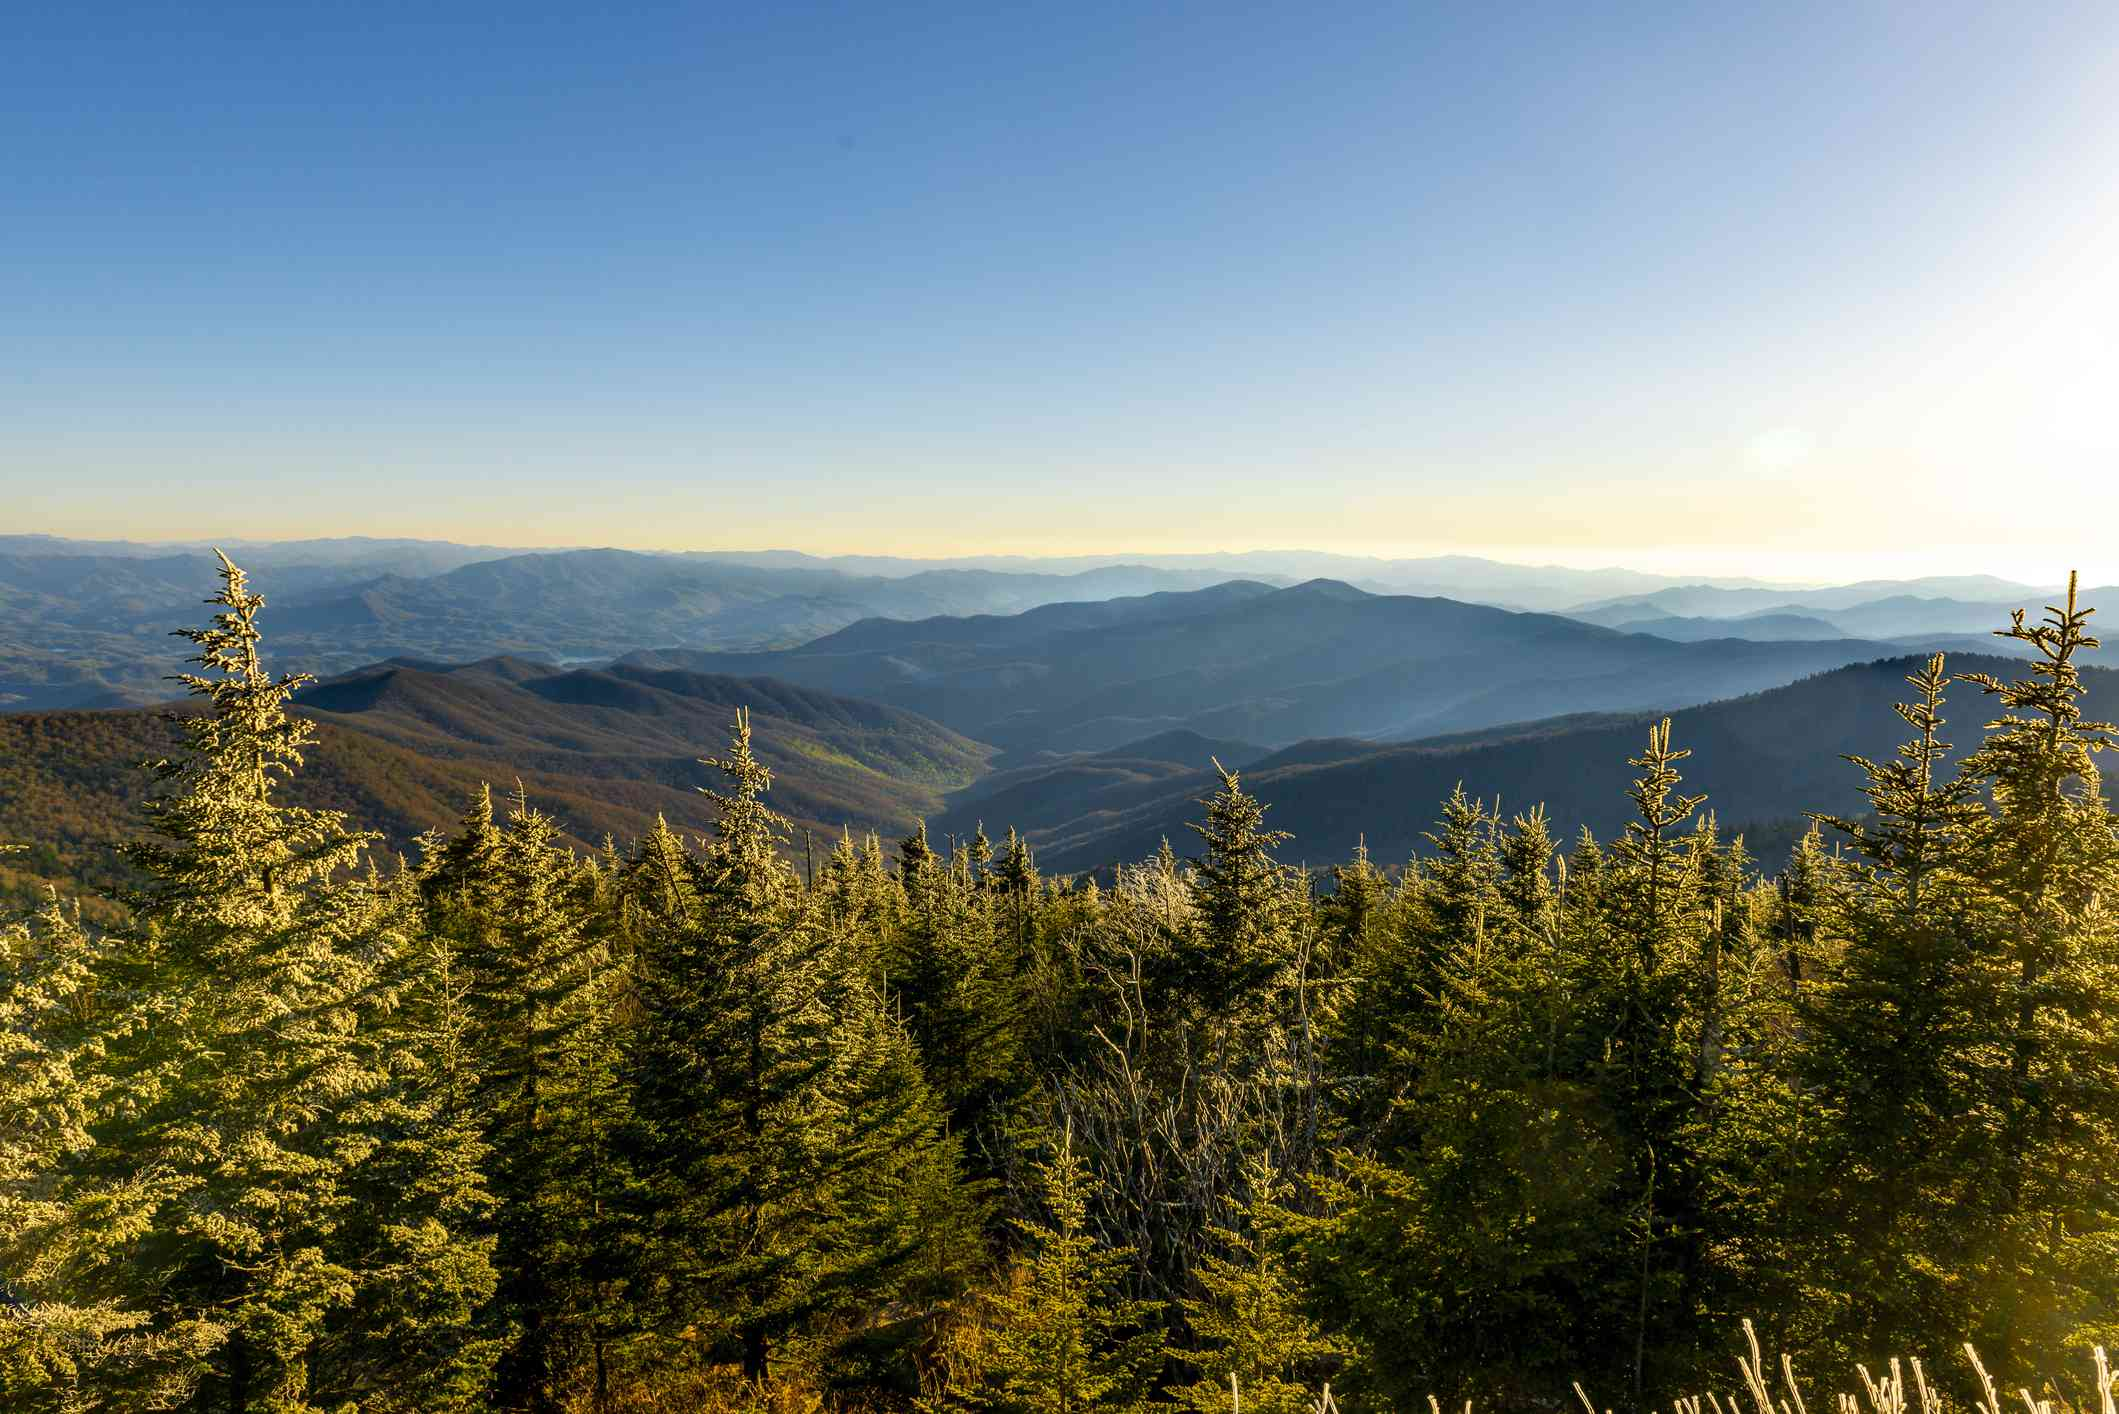 View of Great Smoky Mountains from Clingmans Dome